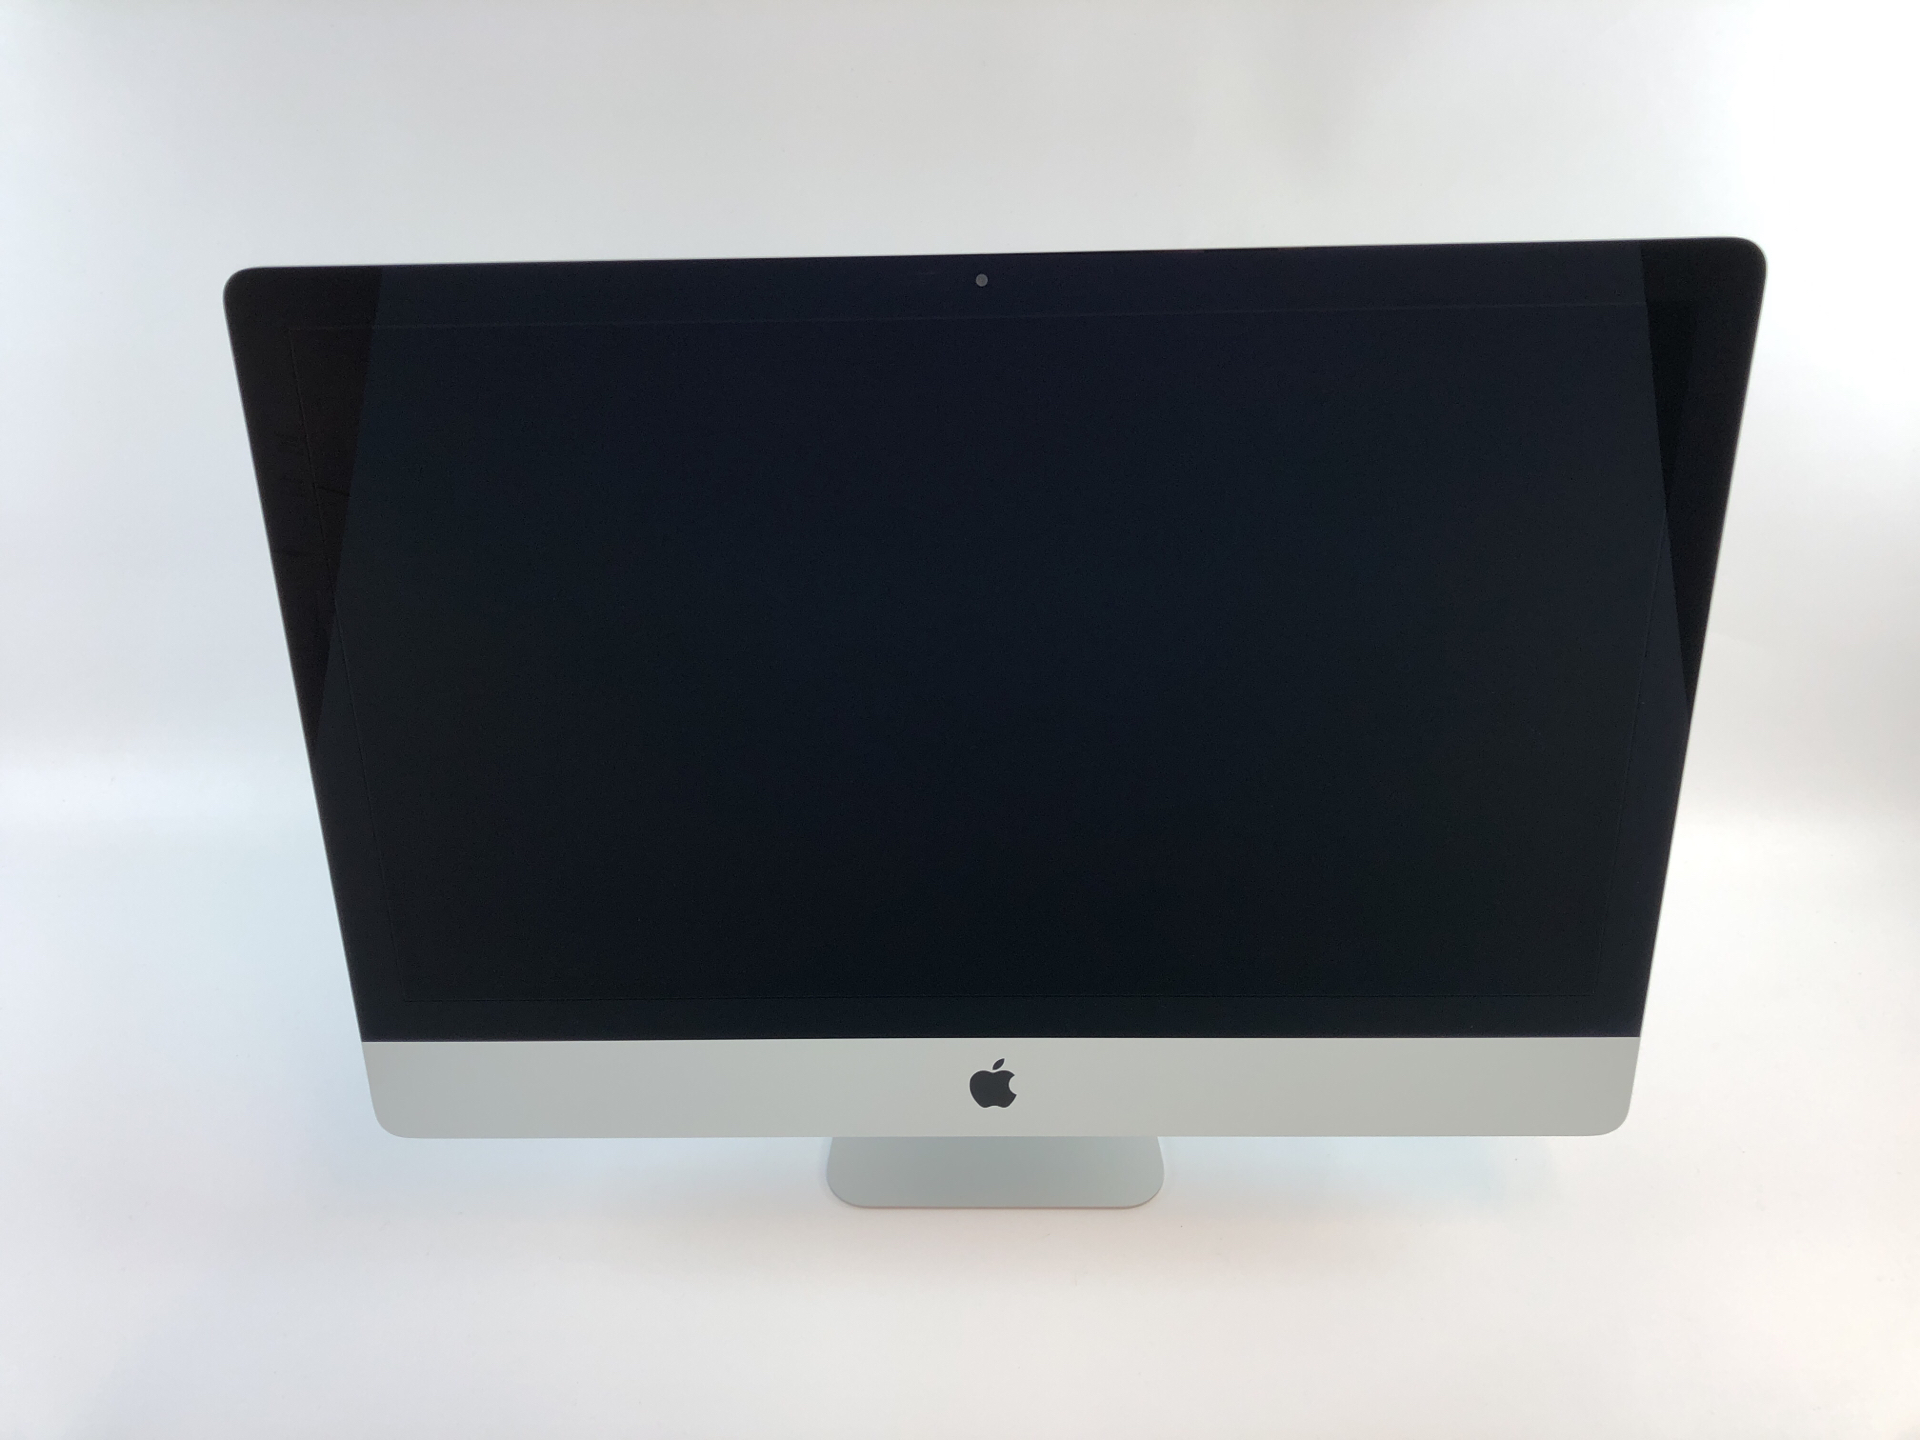 "iMac 27"" Late 2013 (Intel Quad-Core i7 3.5 GHz 32 GB RAM 3 TB Fusion Drive), Intel Quad-Core i7 3.5 GHz, 32 GB RAM, 3 TB Fusion Drive (third-party), imagen 1"